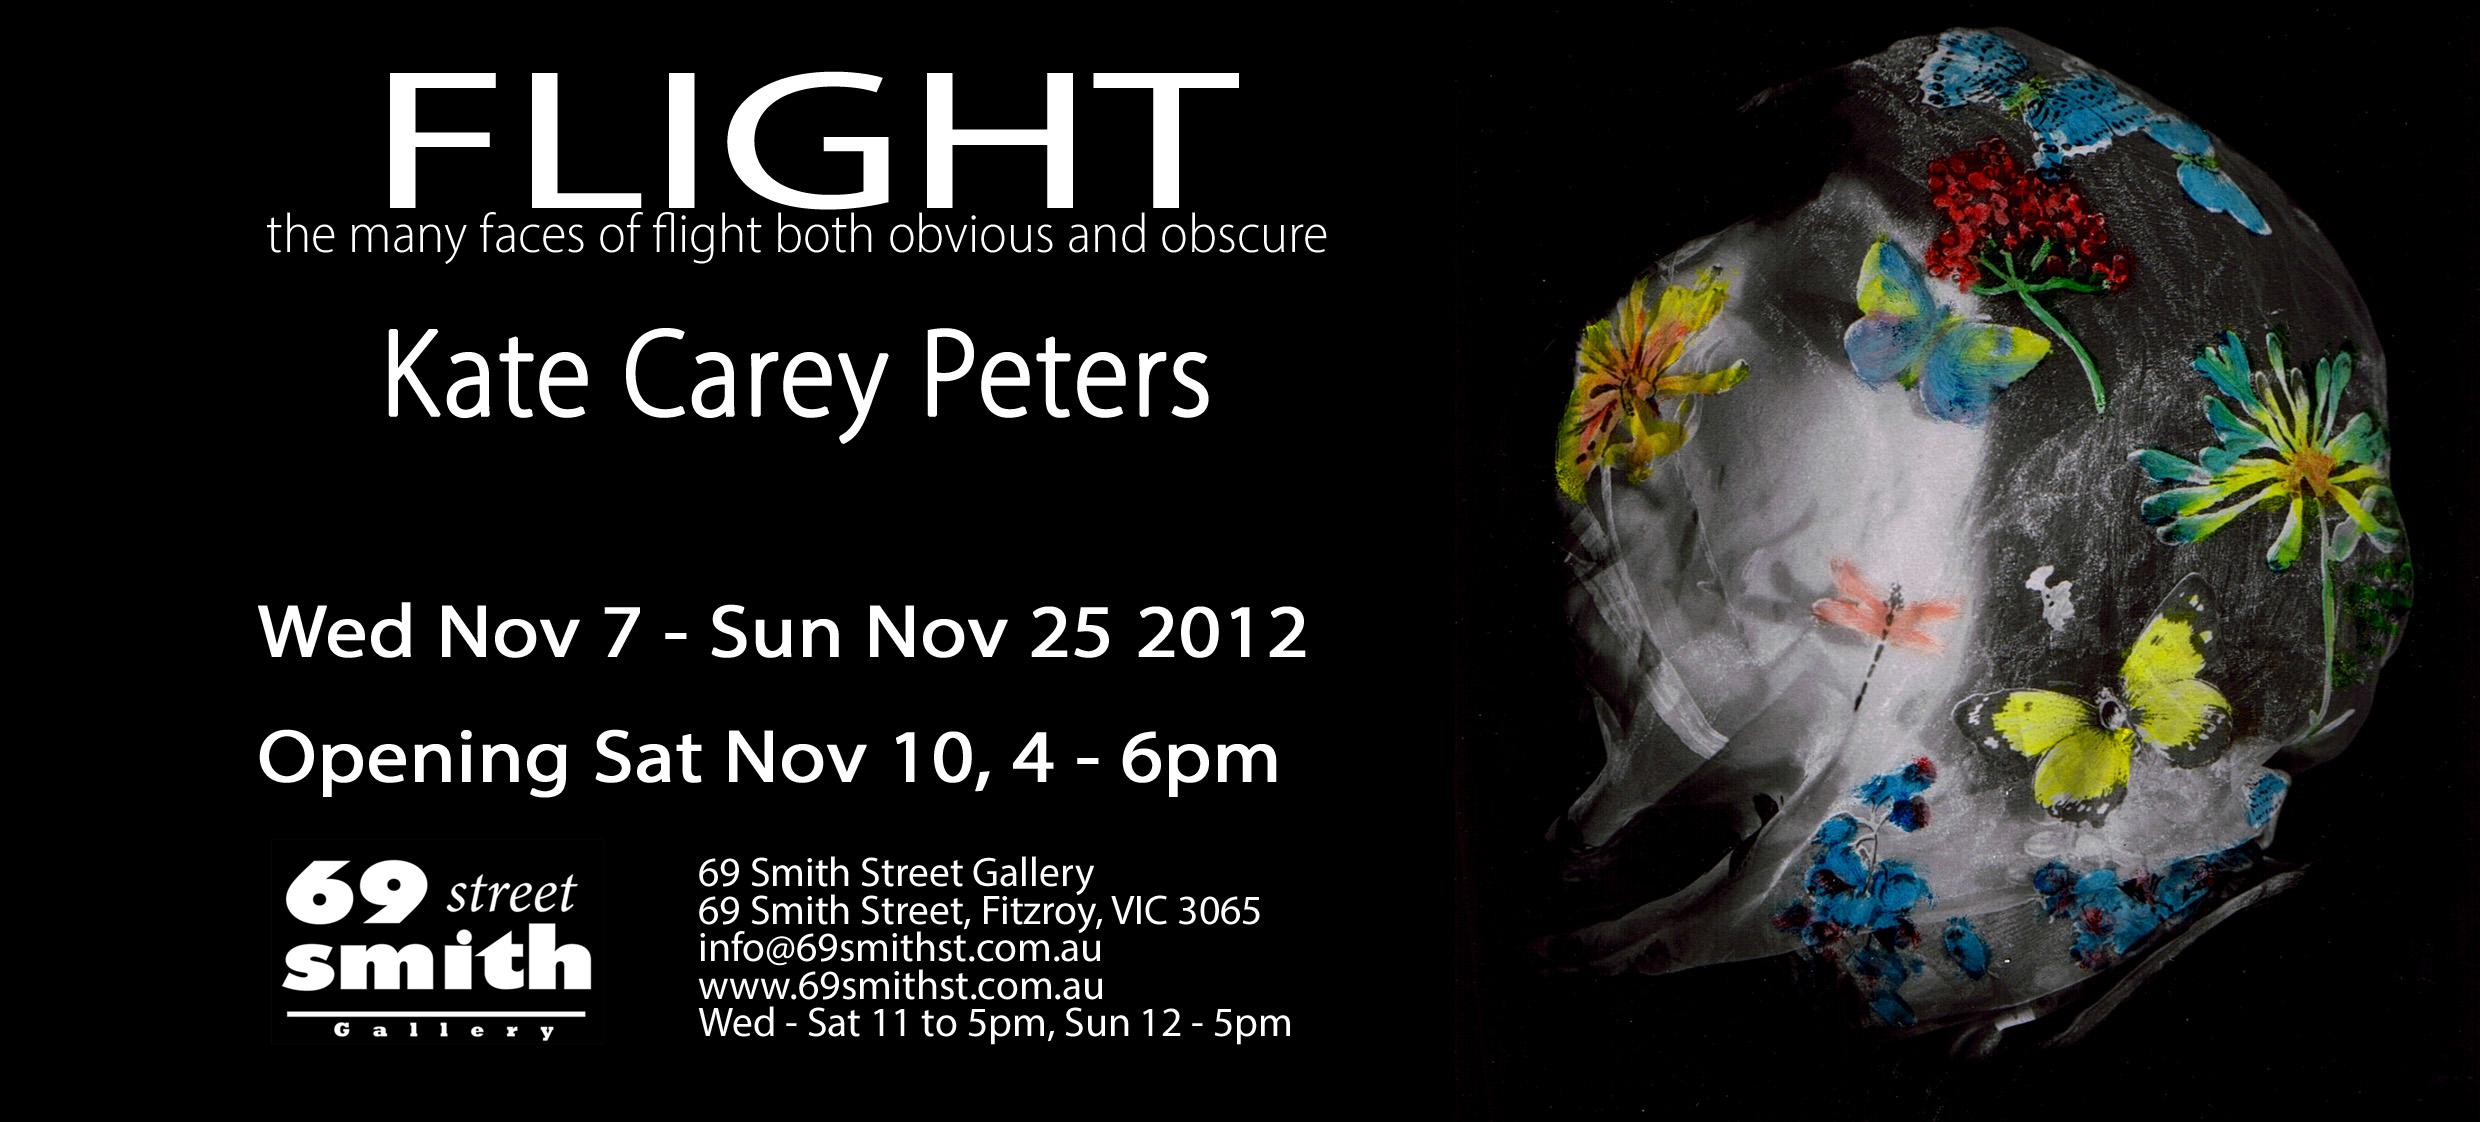 My first solo exhibition – Flight at 69 Smith st Gallery Fitzroy  November 7-25